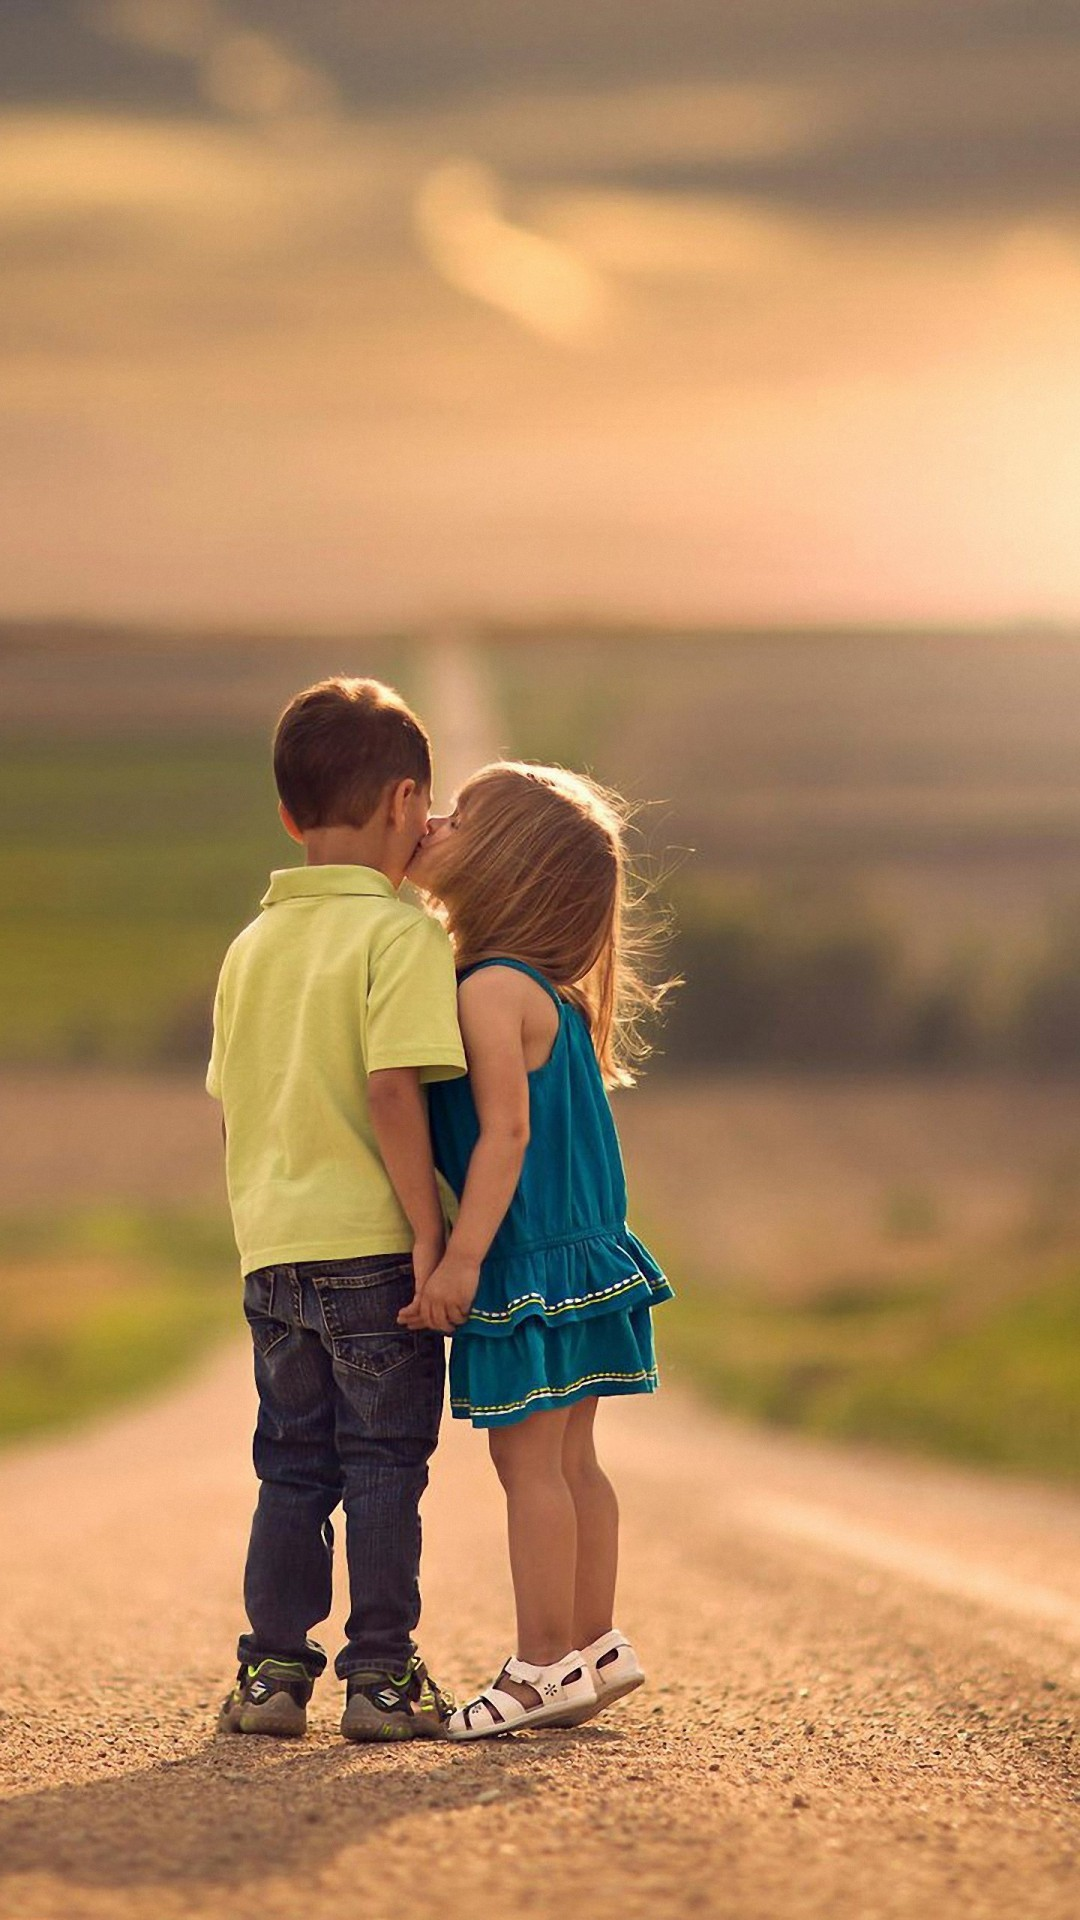 Love couple Hd Wallpaper For Smartphone : cute Love Baby couple Wallpapers For Mobile Hd Wallpaper Images